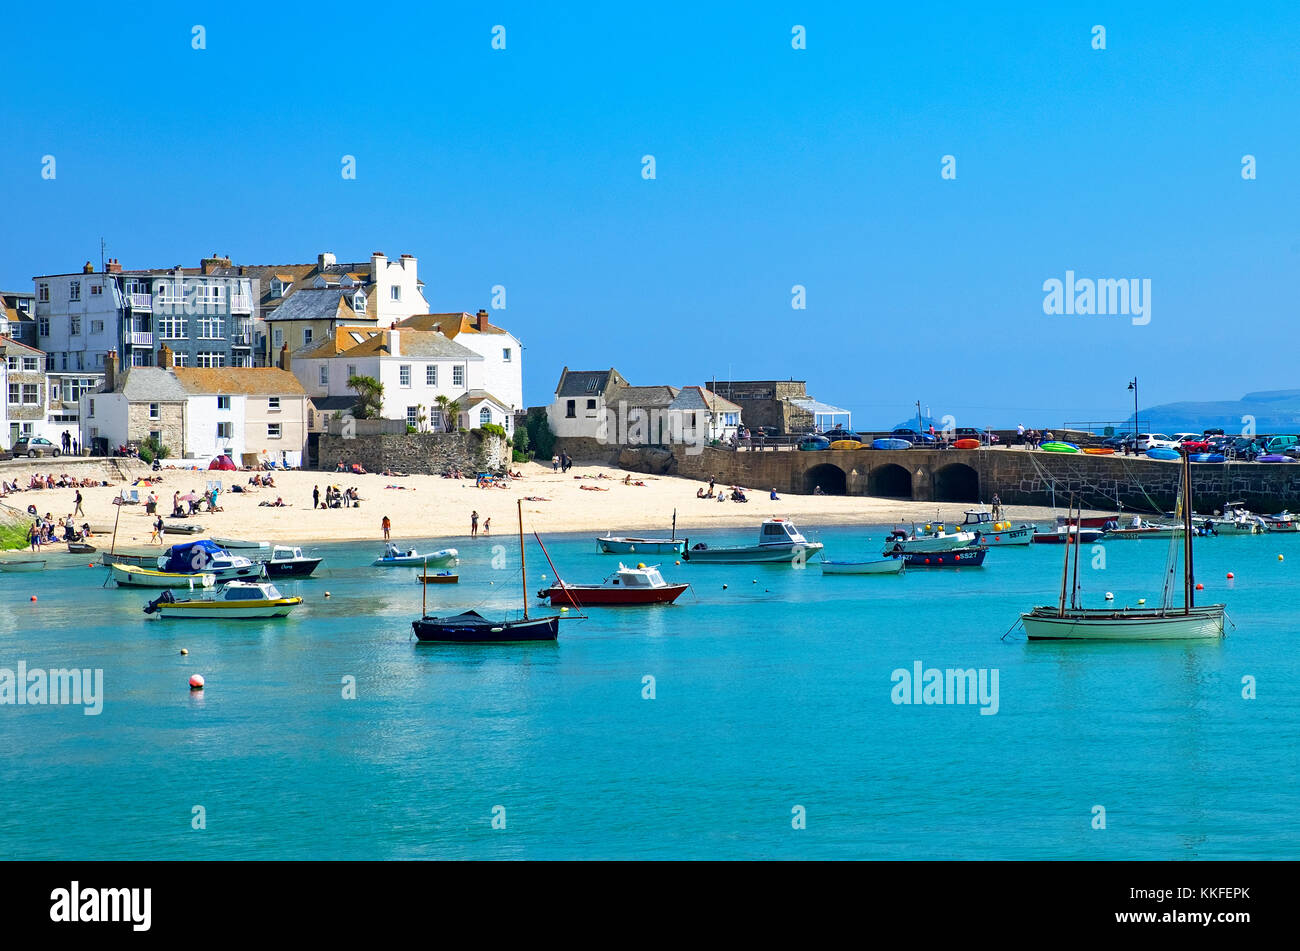 boats in the harbour at st.ives, cornwall, england, britain, uk. Stock Photo